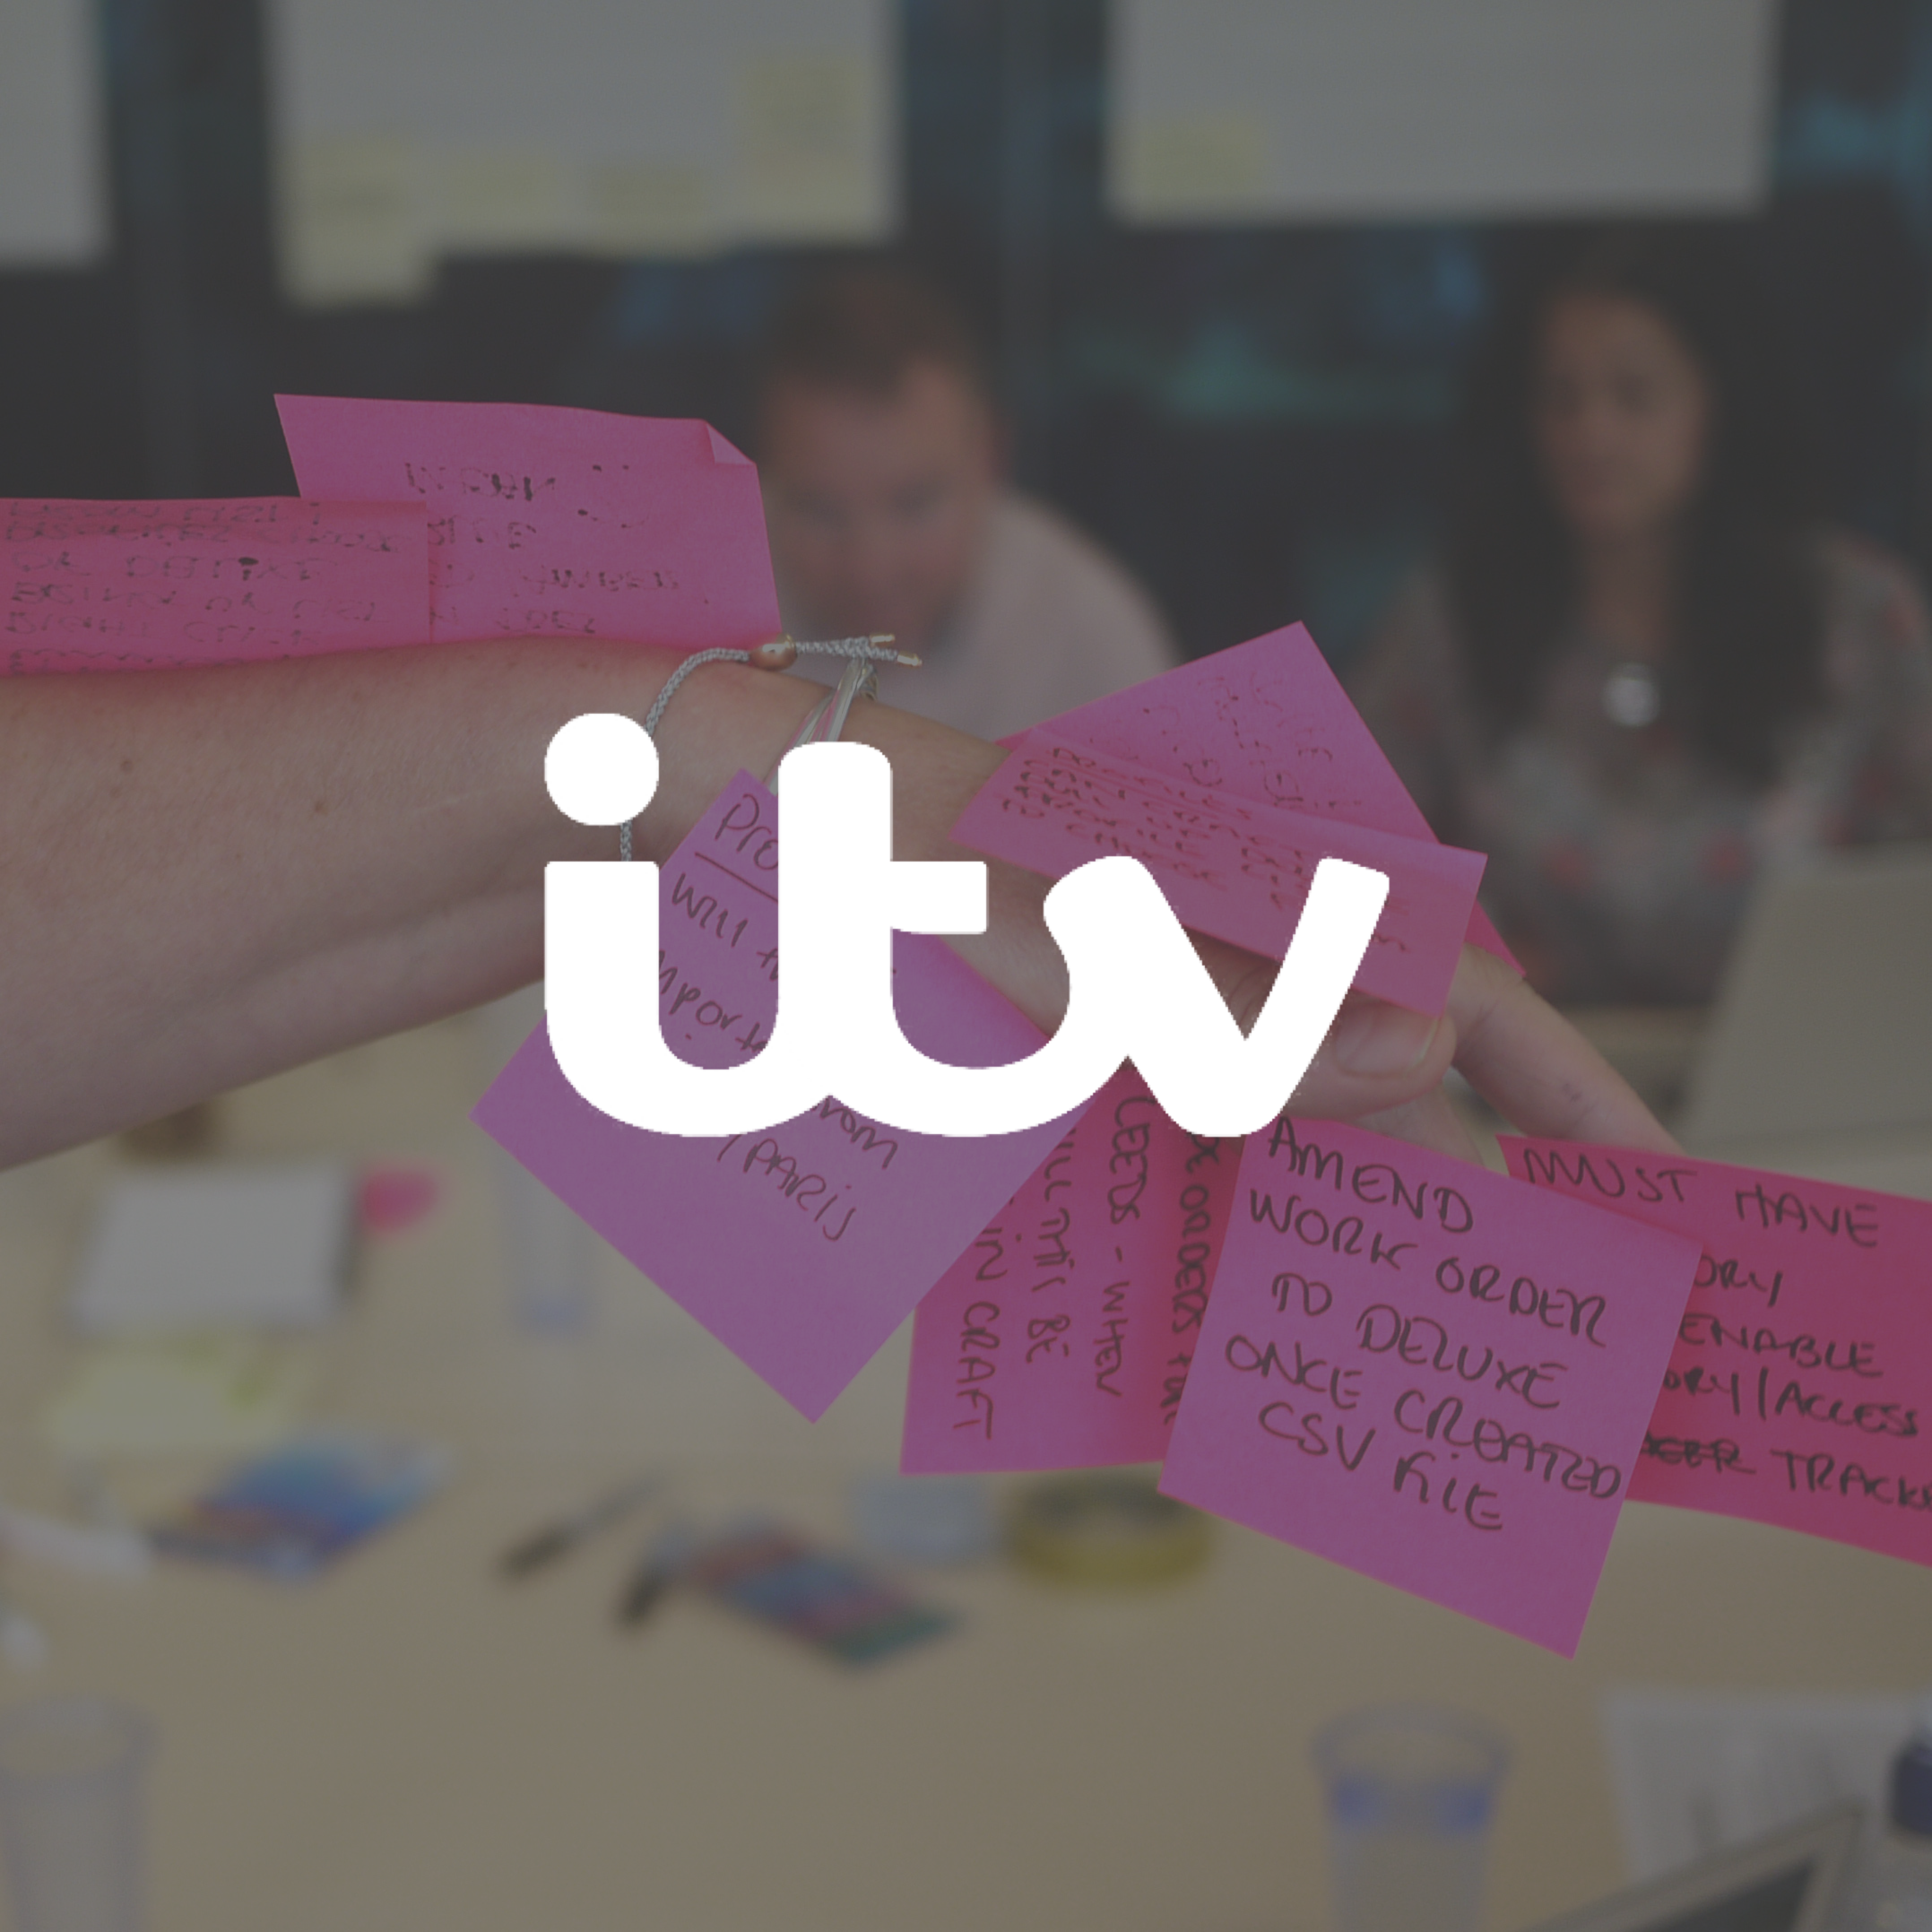 Technology Modernisation - I have been working with ITV on and off since 2016 as a Lead UX Designer on a big technology modernisation project. We have developed several products to modernise ITV content supply chain. I have worked a great deal on a fulfillment internal tool with ITV's tech team. We work following scrum and lean methodology.